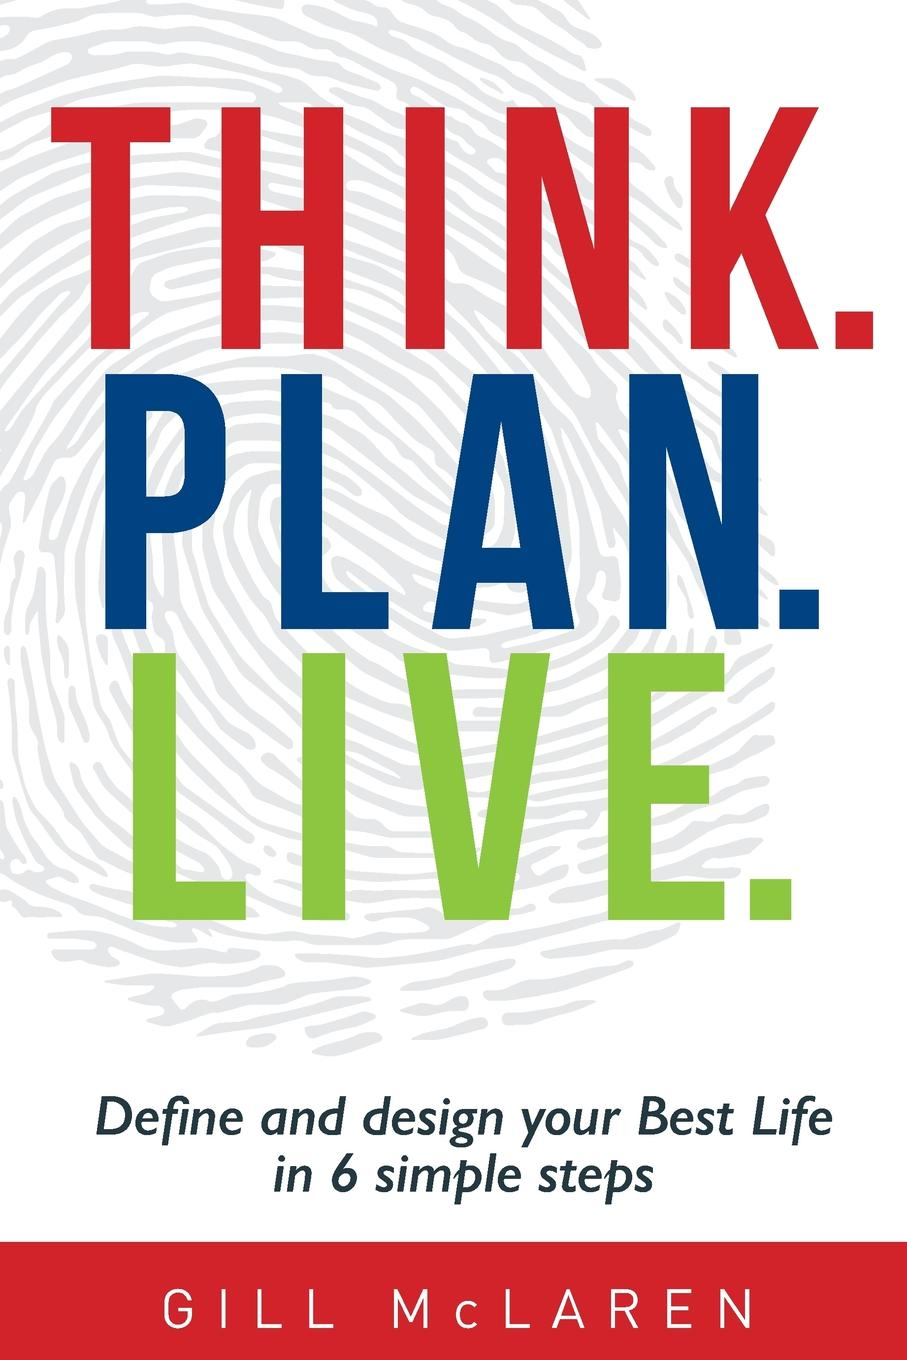 Gill McLaren Think. Plan. Live. Define and design your Best Life in 6 simple steps paul muolo $700 billion bailout the emergency economic stabilization act and what it means to you your money your mortgage and your taxes